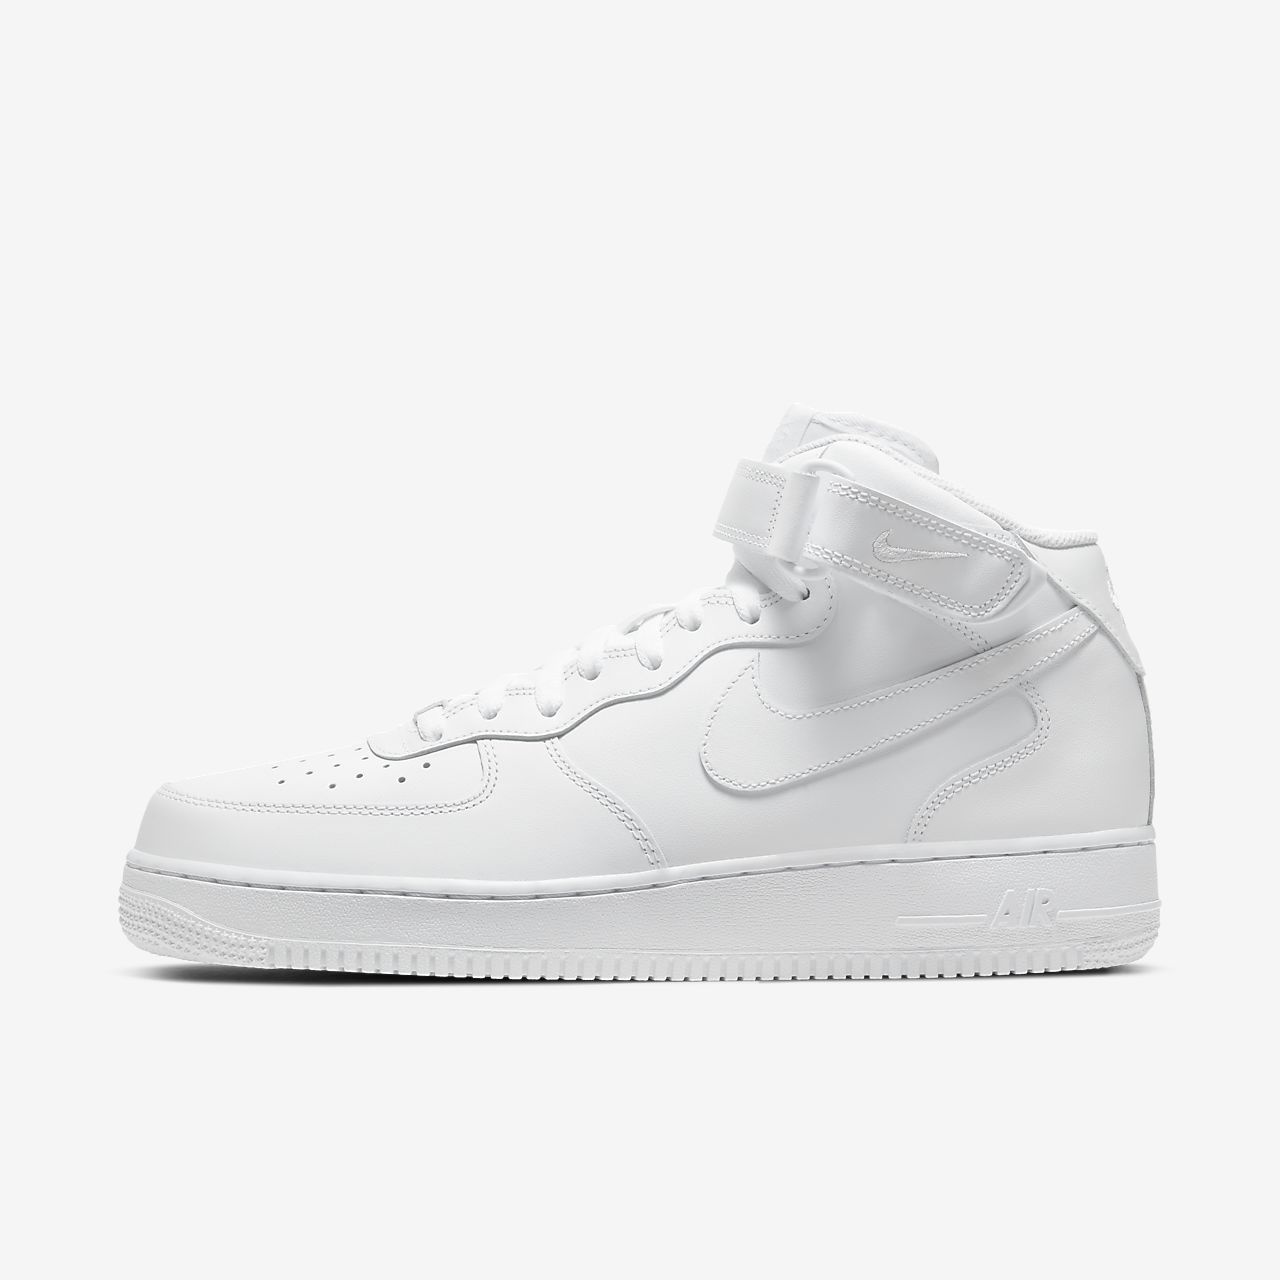 bas prix b3d92 69d1f Nike Air Force 1 Mid '07 Men's Shoe